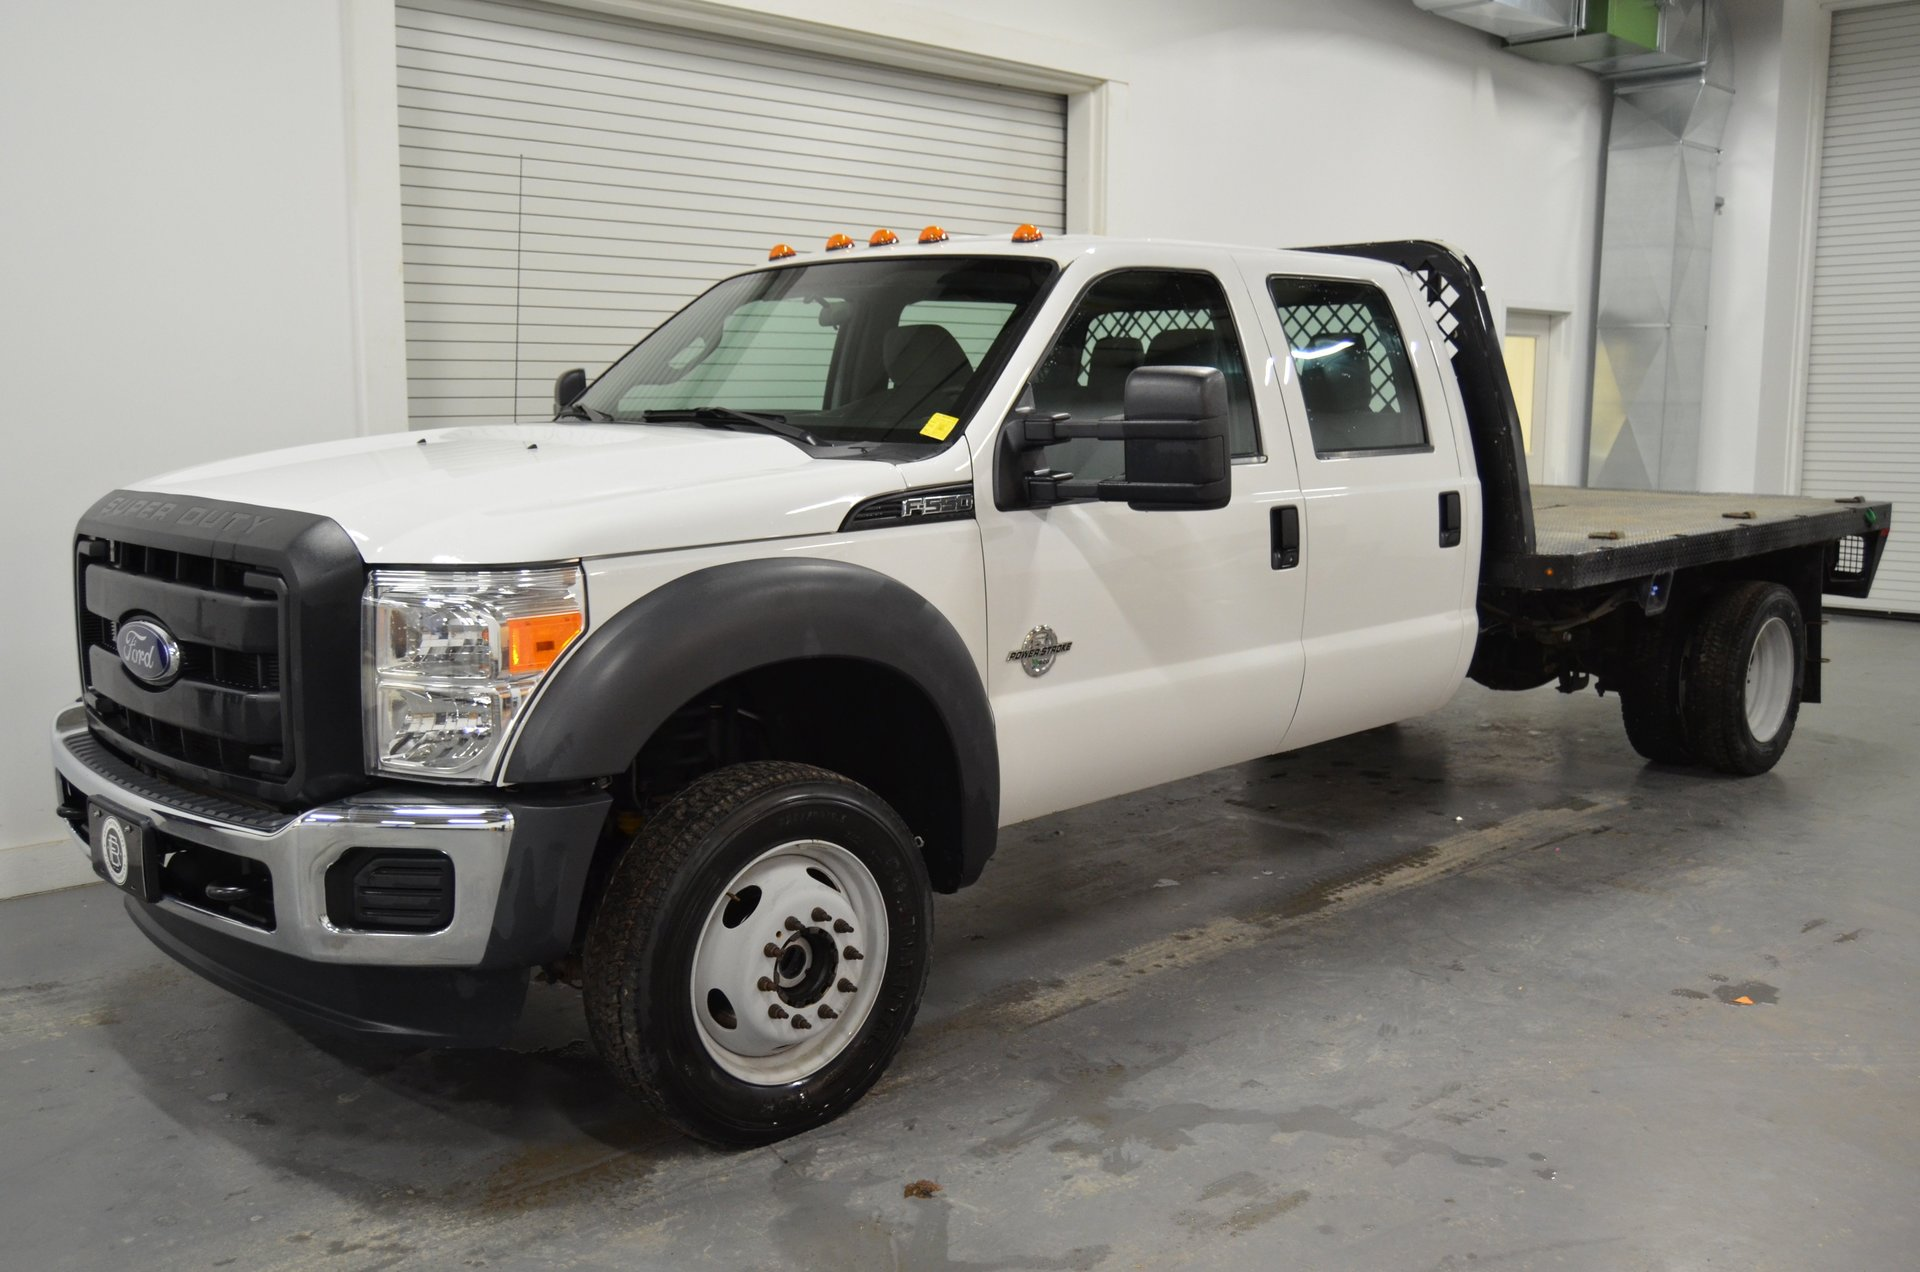 3538ee4f6299_hd_2016-ford-f550 Great Description About F450 Vs F550 with Breathtaking Gallery Cars Review